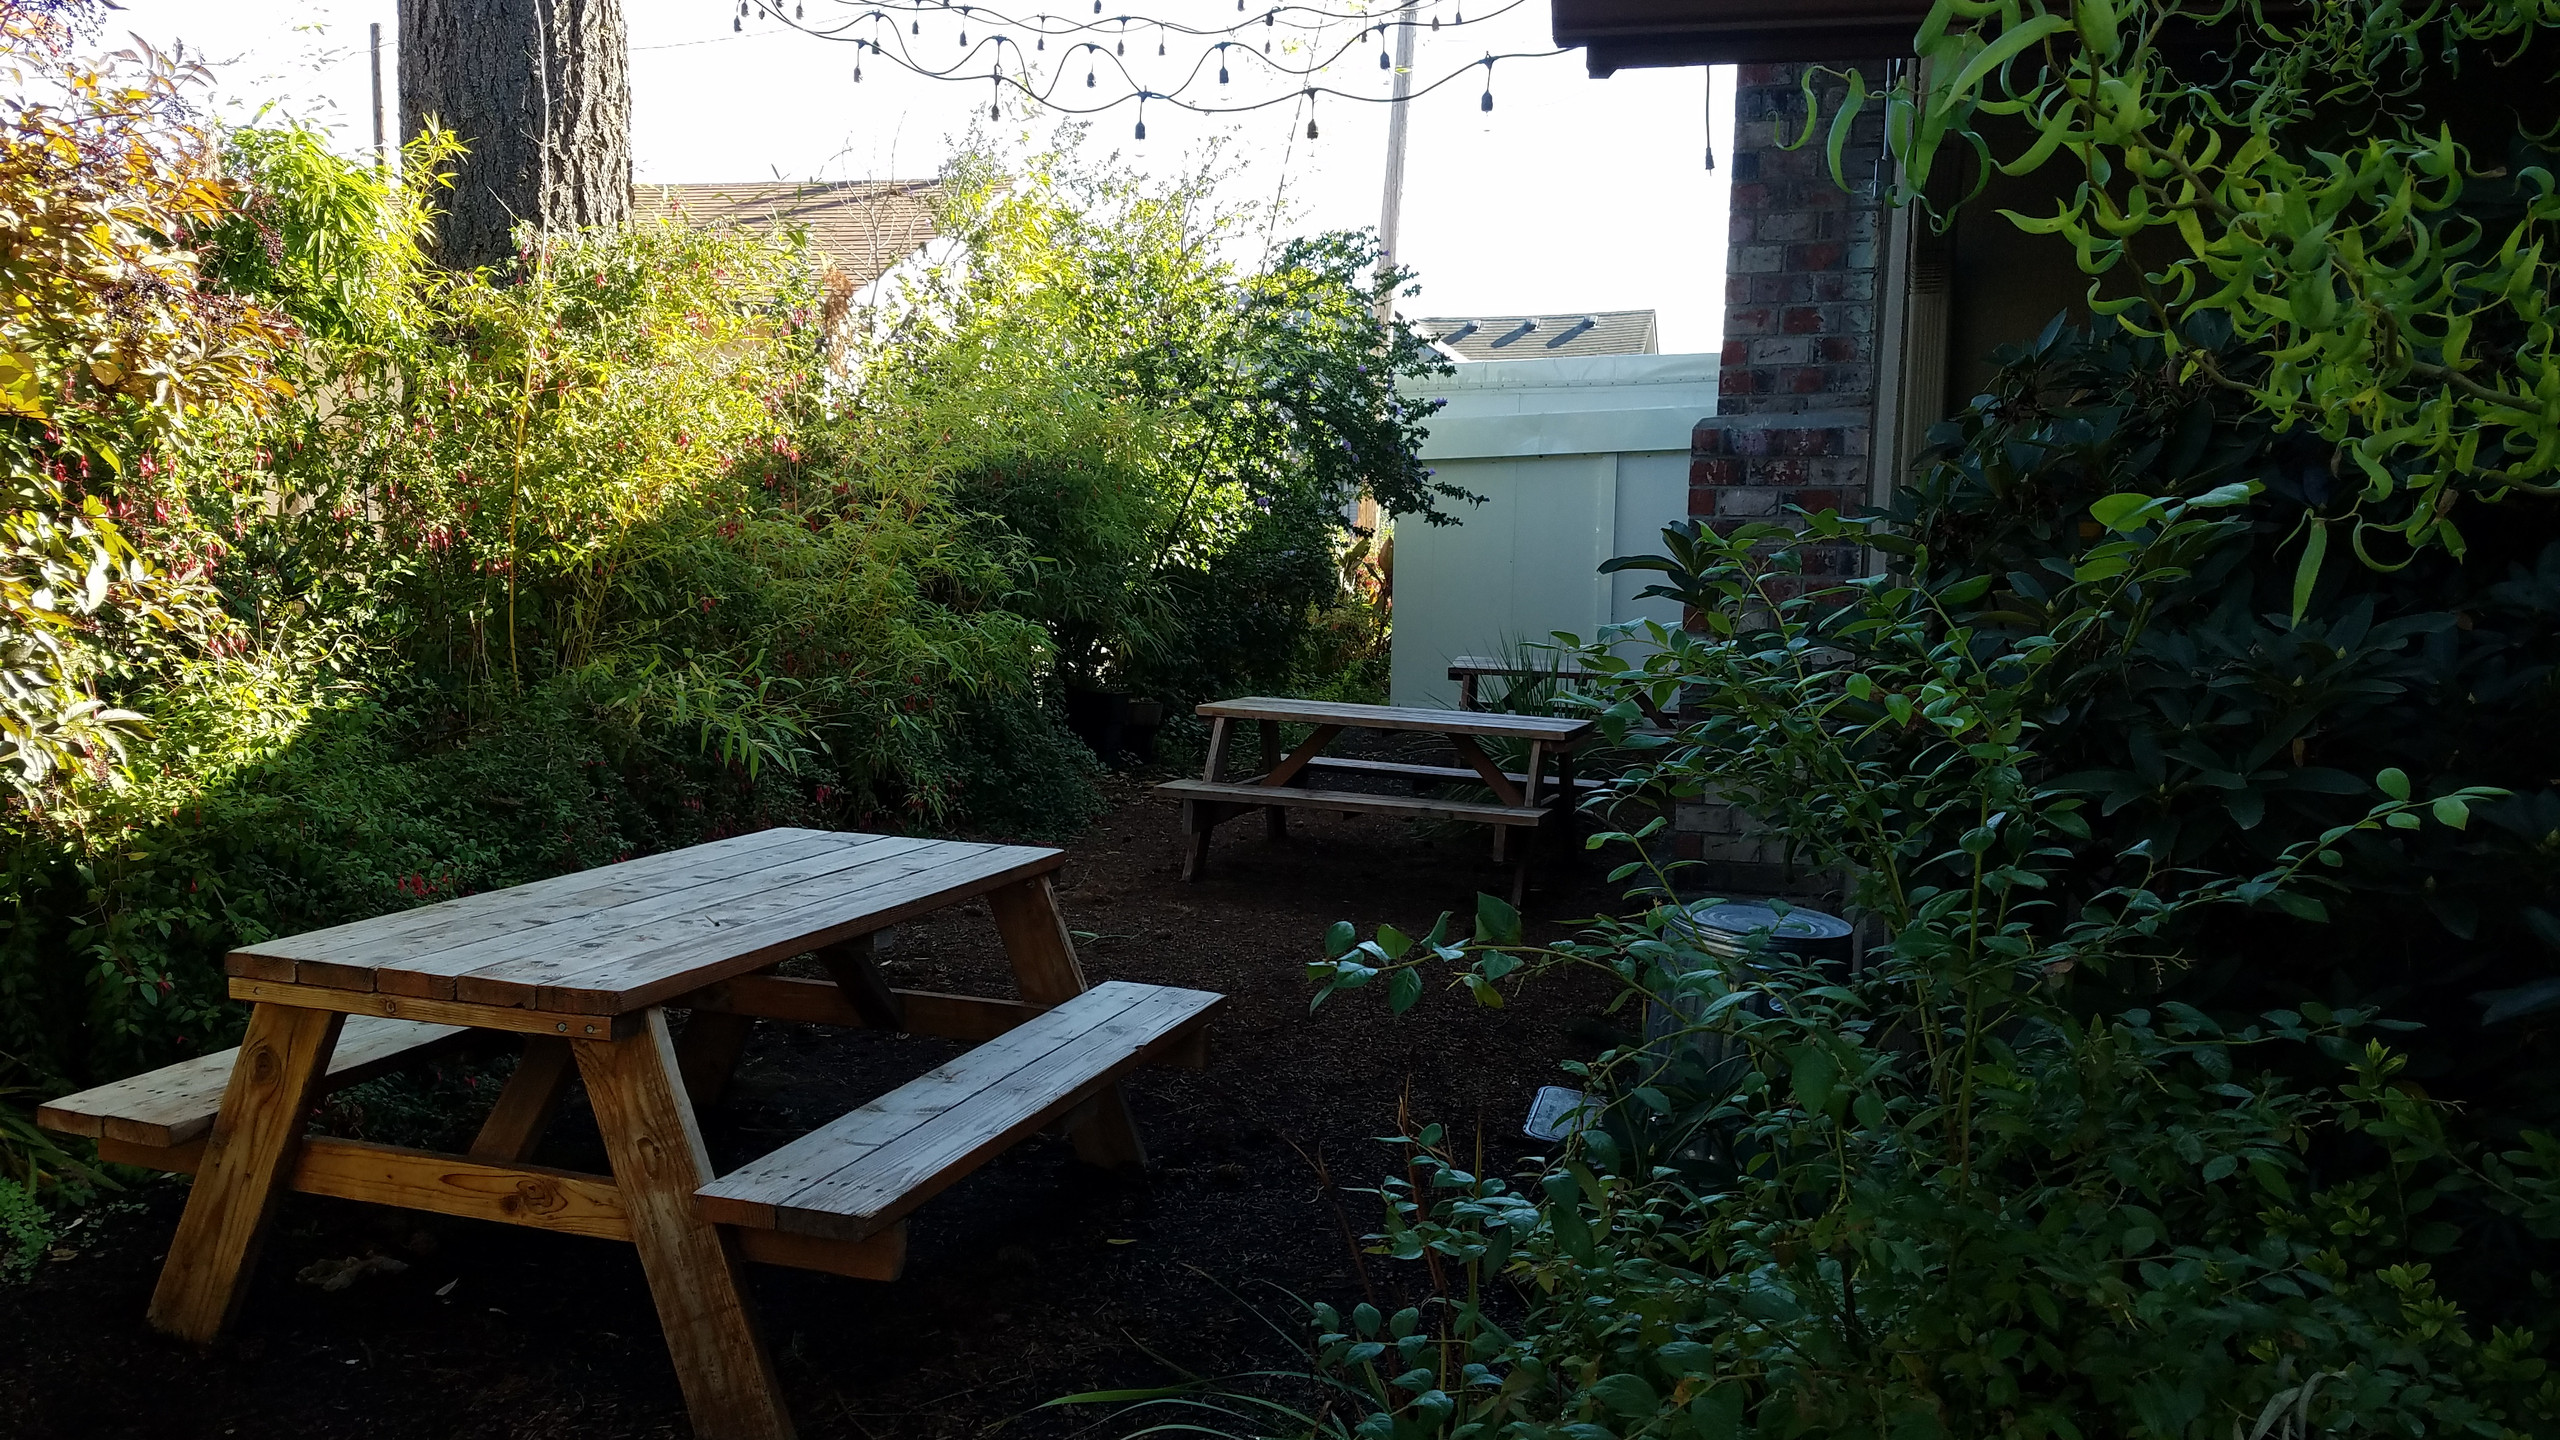 Cresswell Bakery outdoor seating